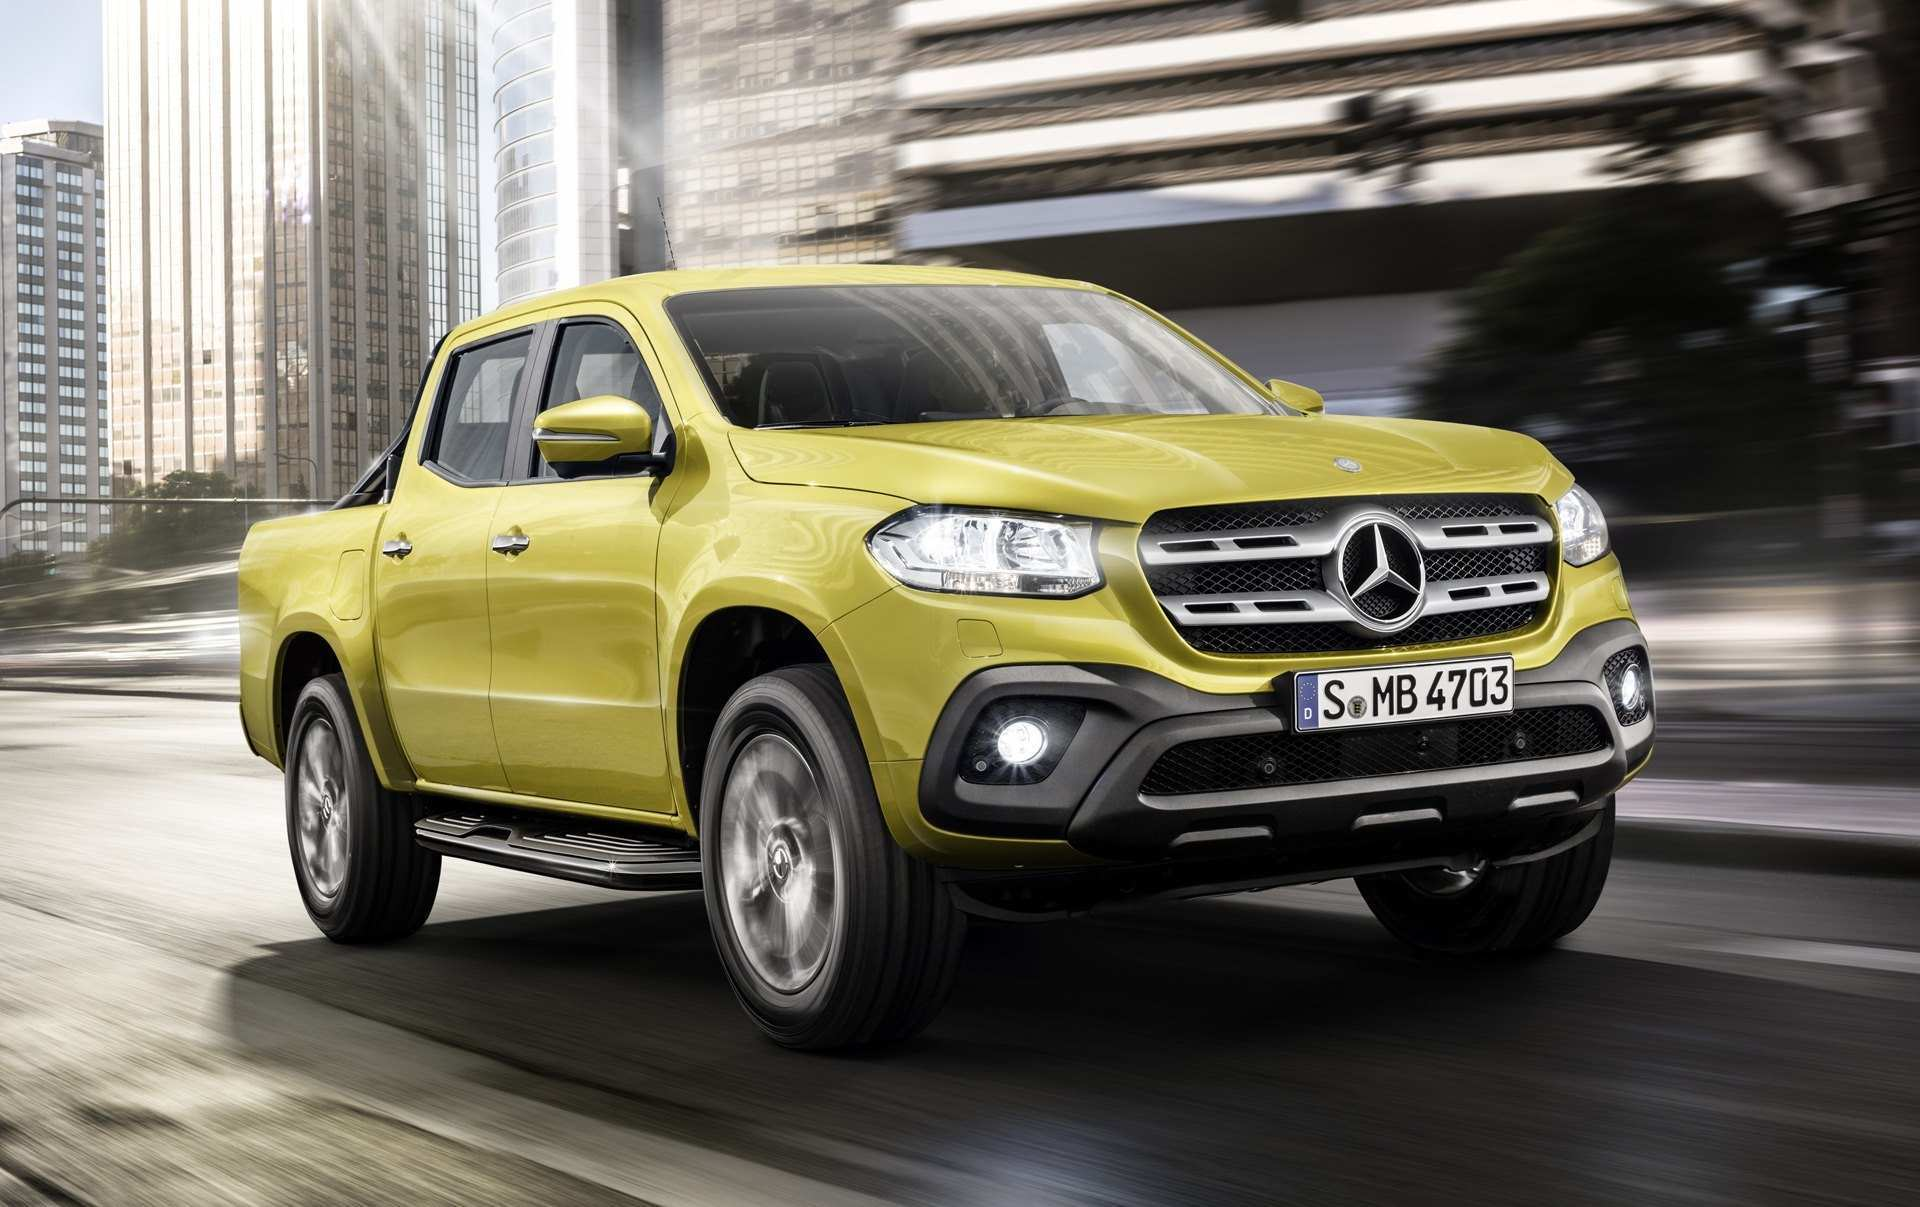 18 All New 2019 Mercedes X Class Pickup Truck Release Date Specs with 2019 Mercedes X Class Pickup Truck Release Date